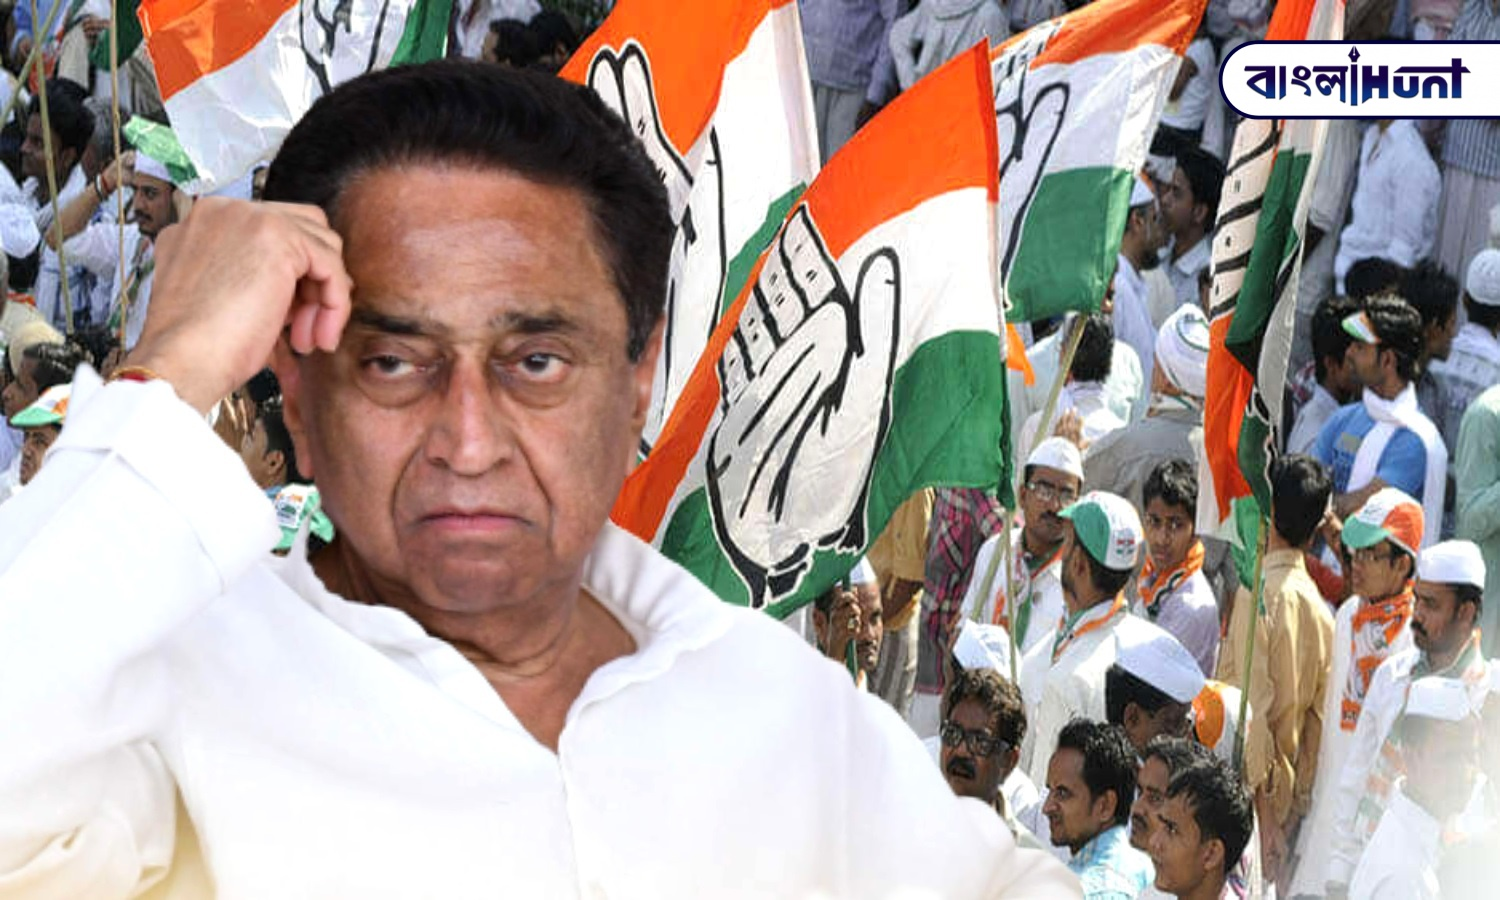 Election Commission takes stern action against Kamal Nath